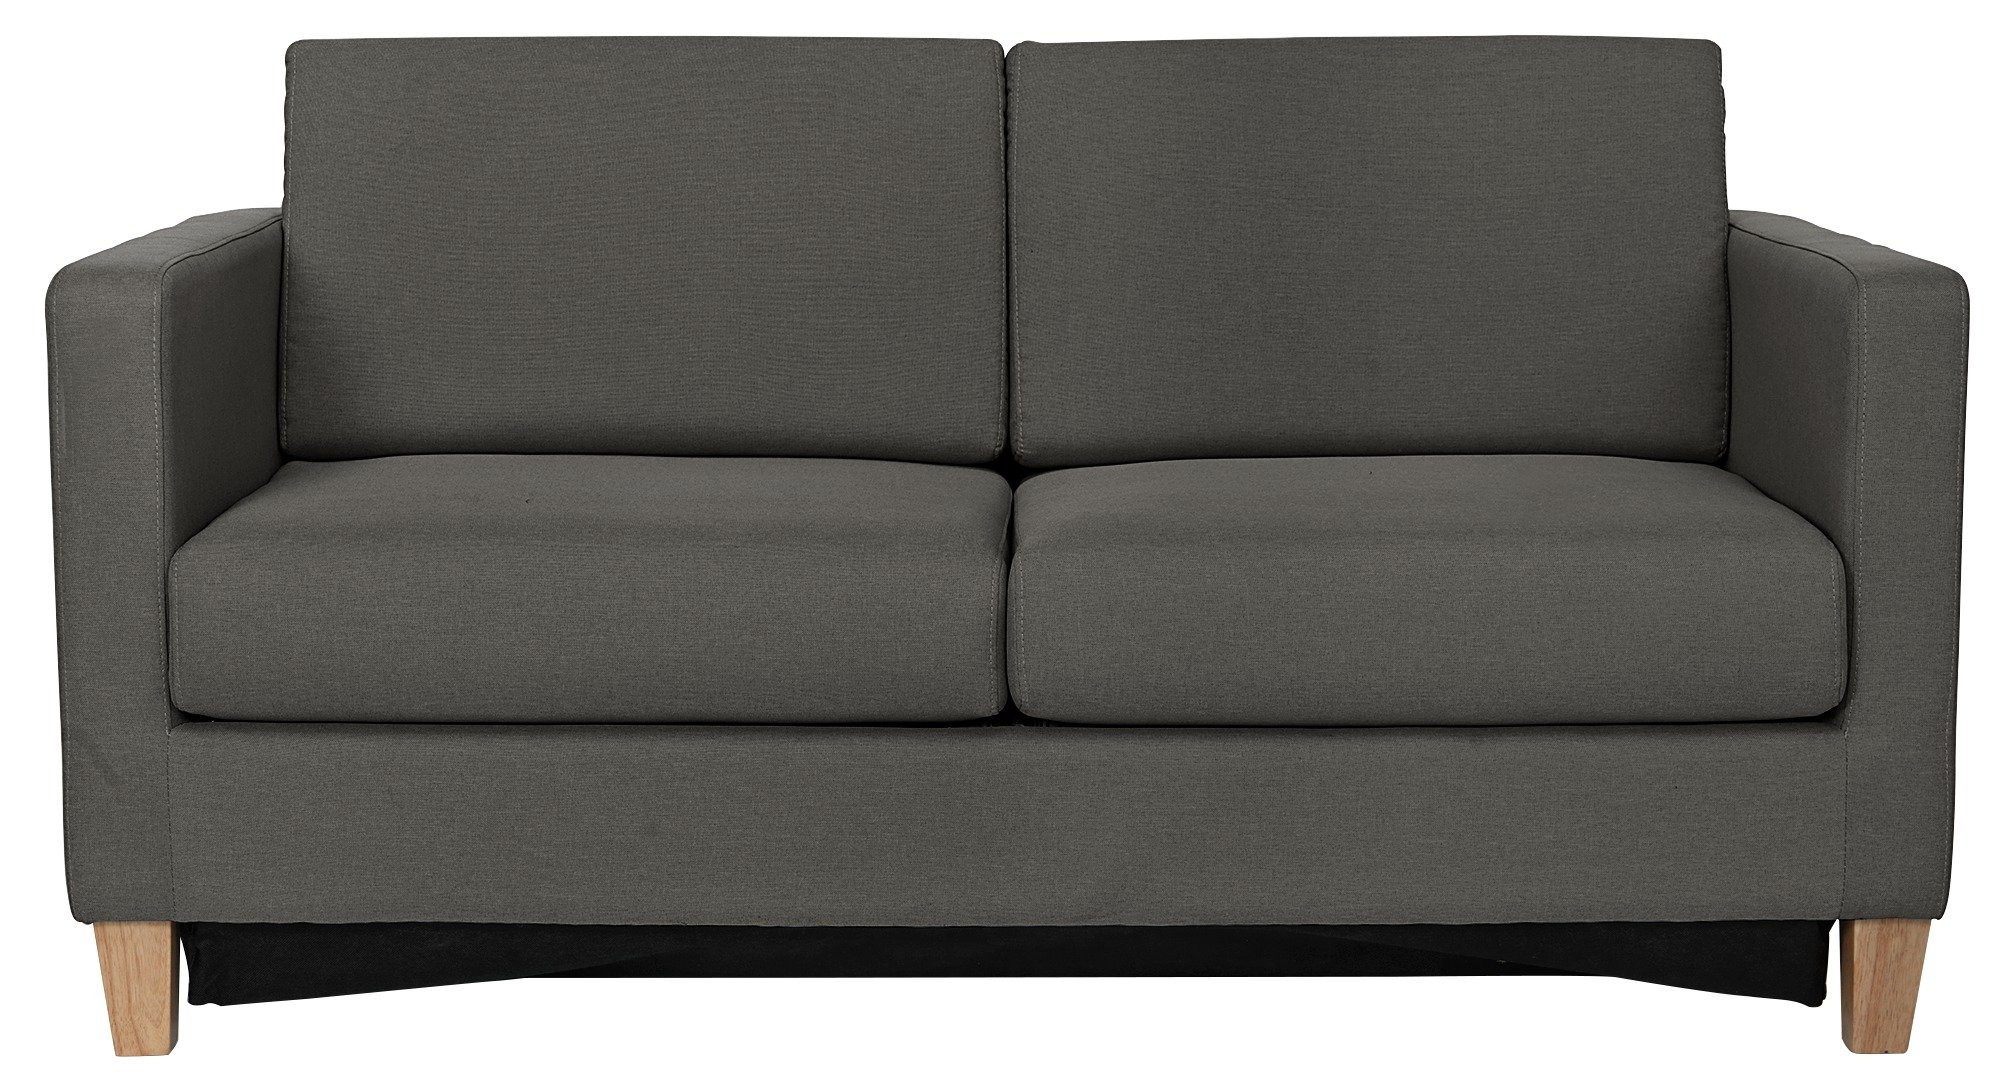 Buy Argos Home Rosie 2 Seater Fabric Sofa Bed - Grey | Sofa beds